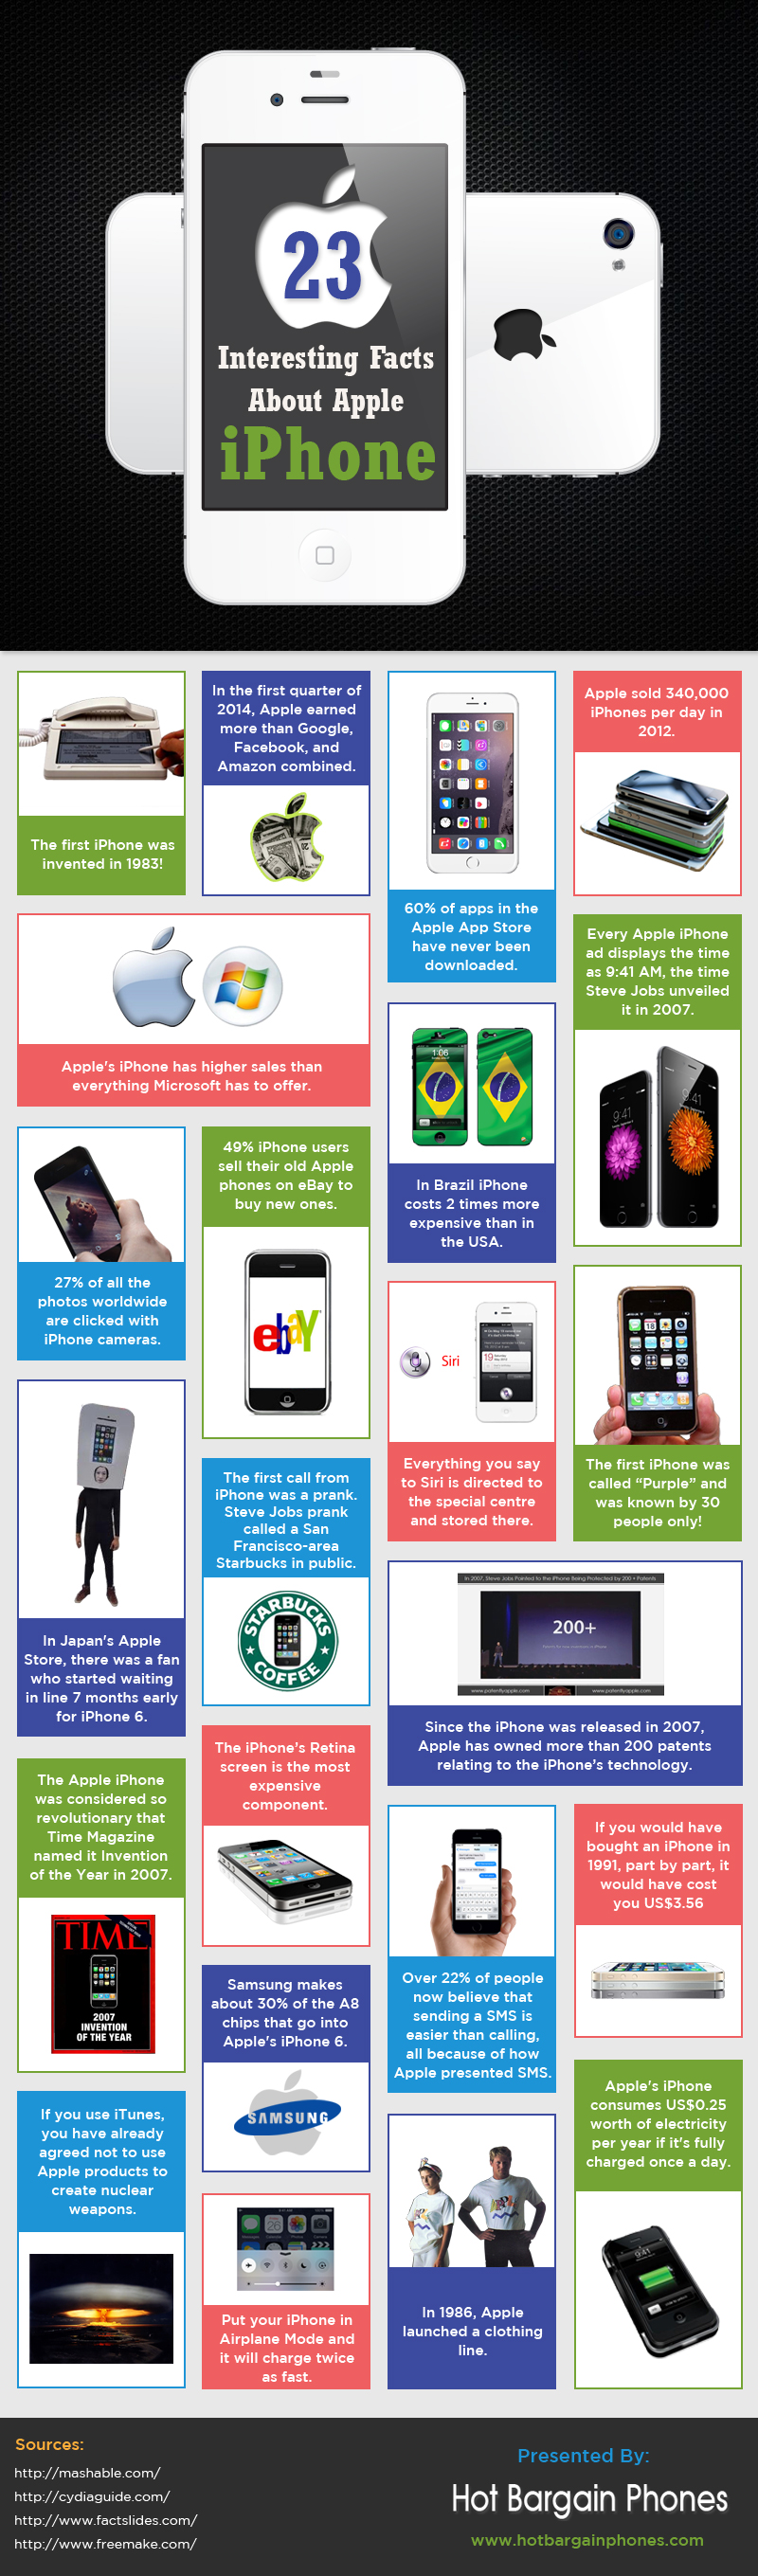 Interesting Facts About Apple iPhone - Image 1